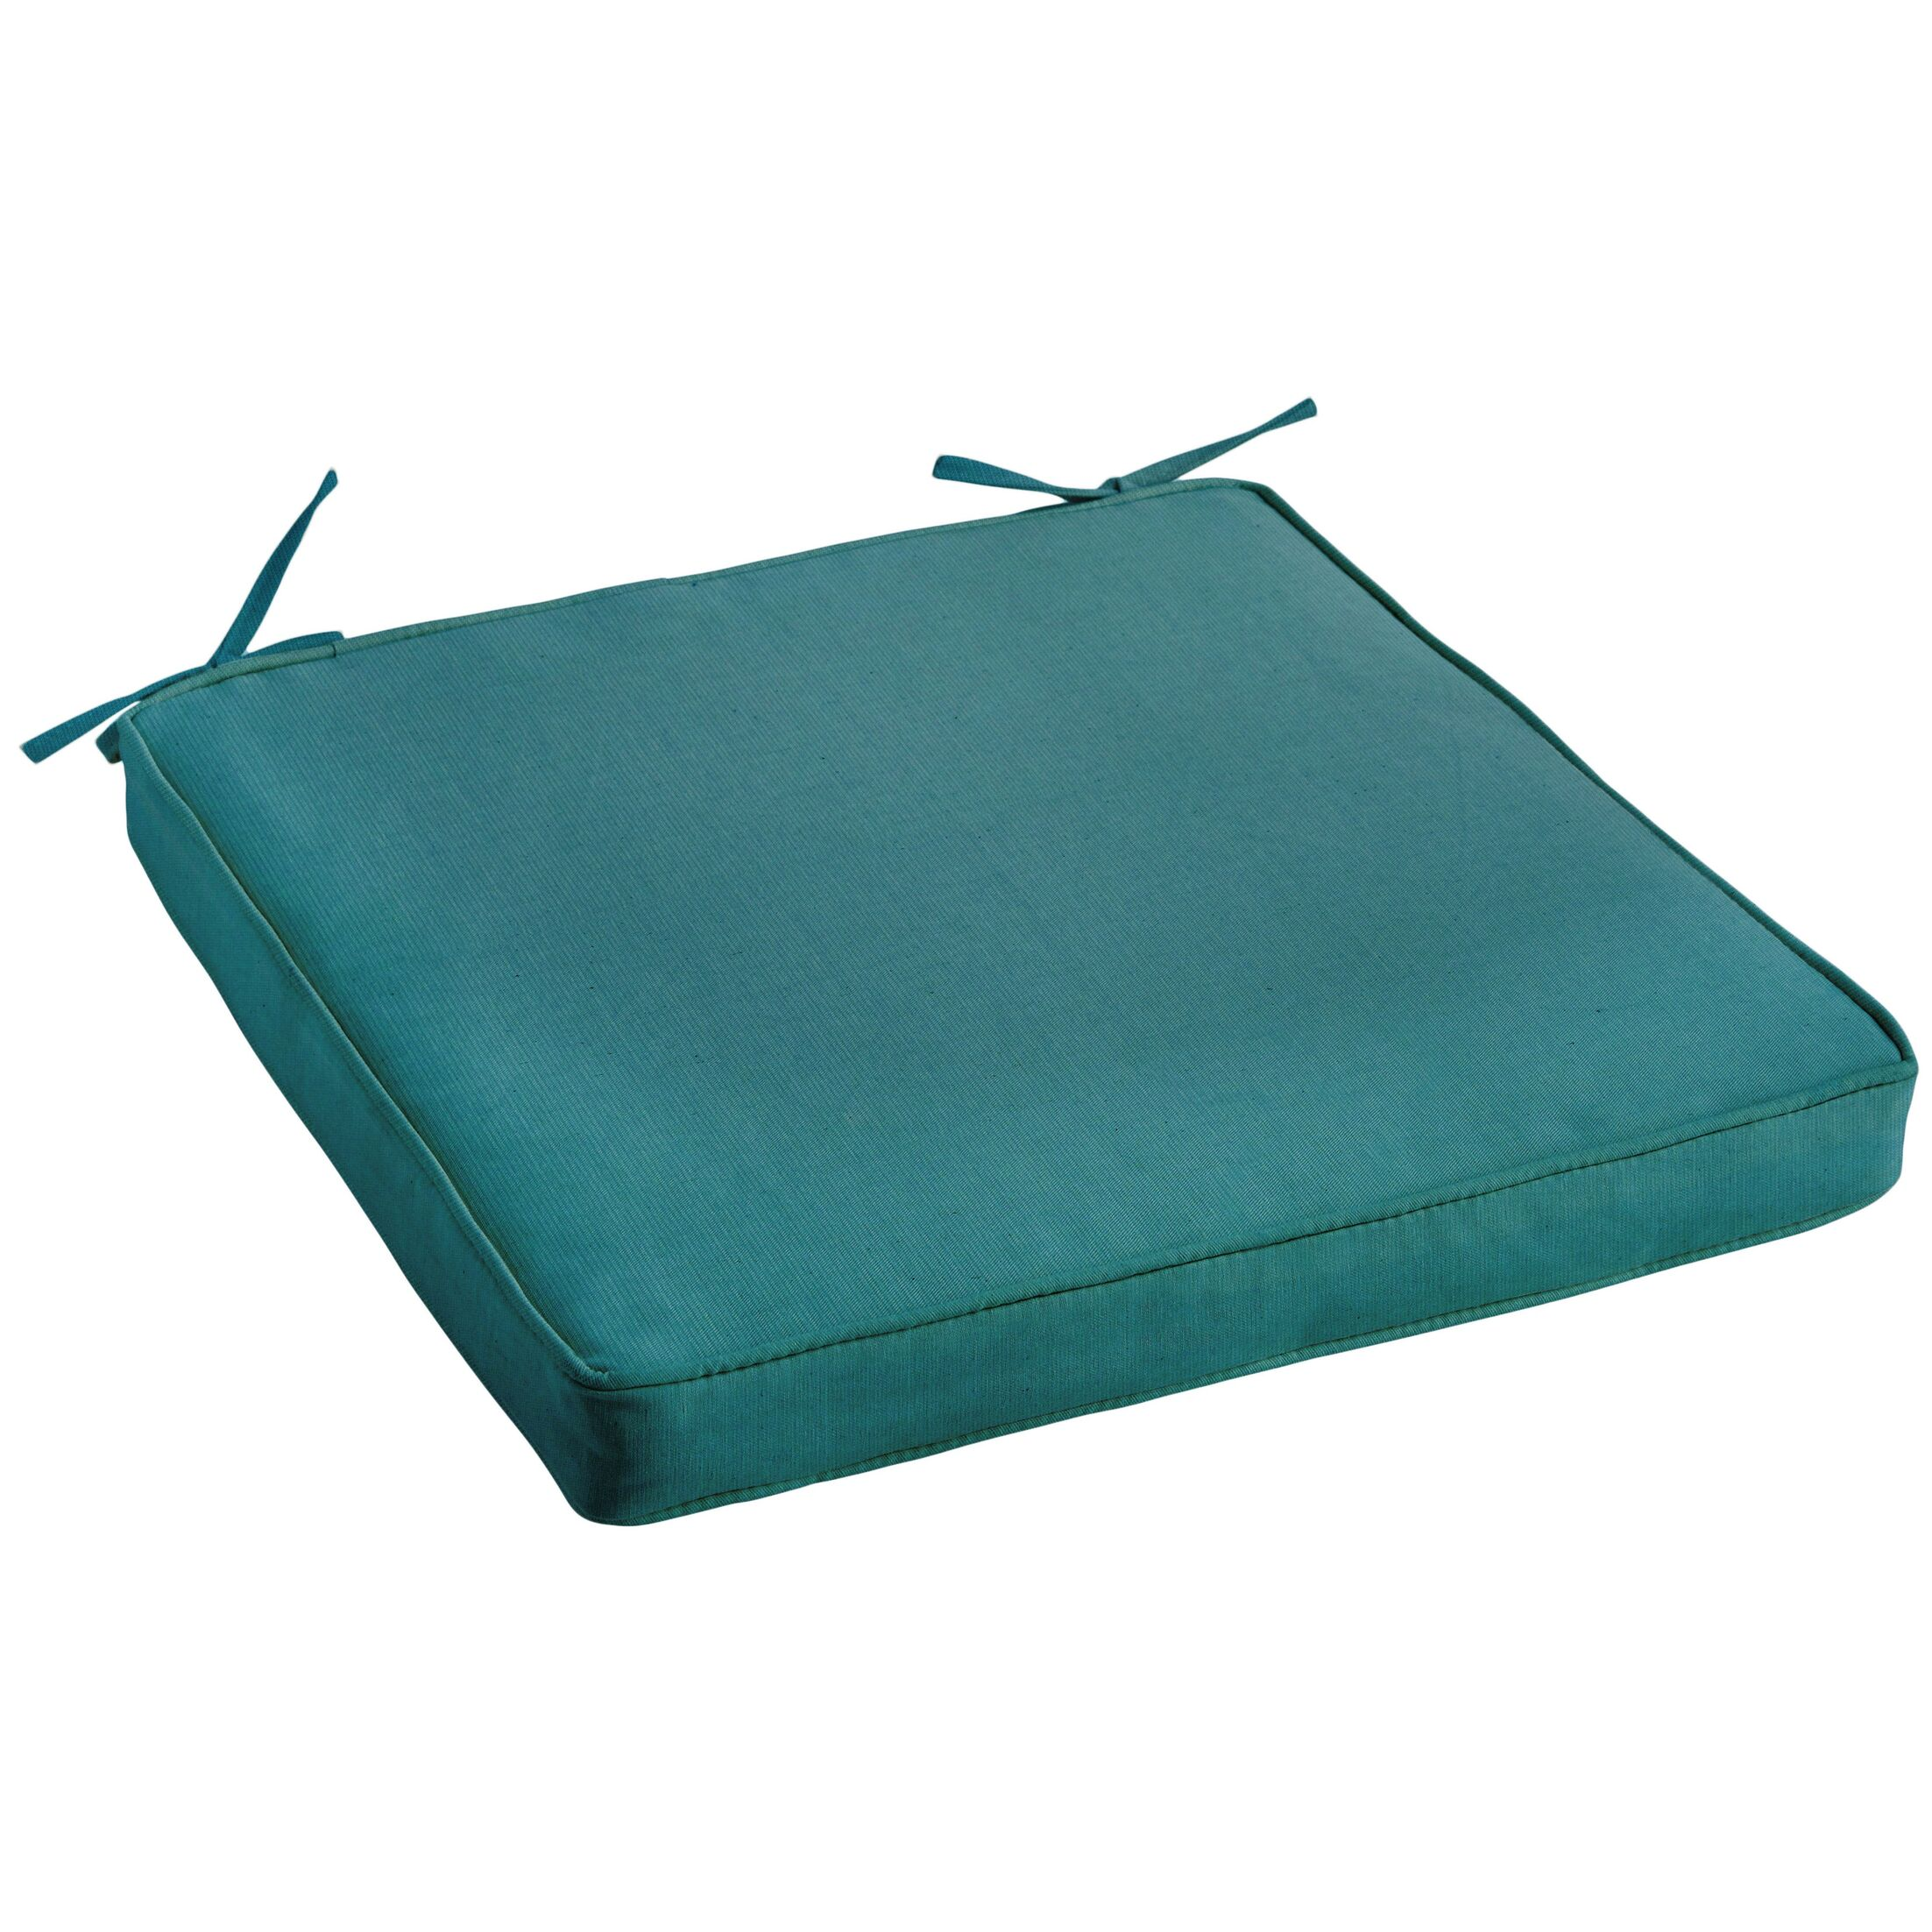 Sunbrella Aruba Blue Chair Cushion, Corded Color: Peacock